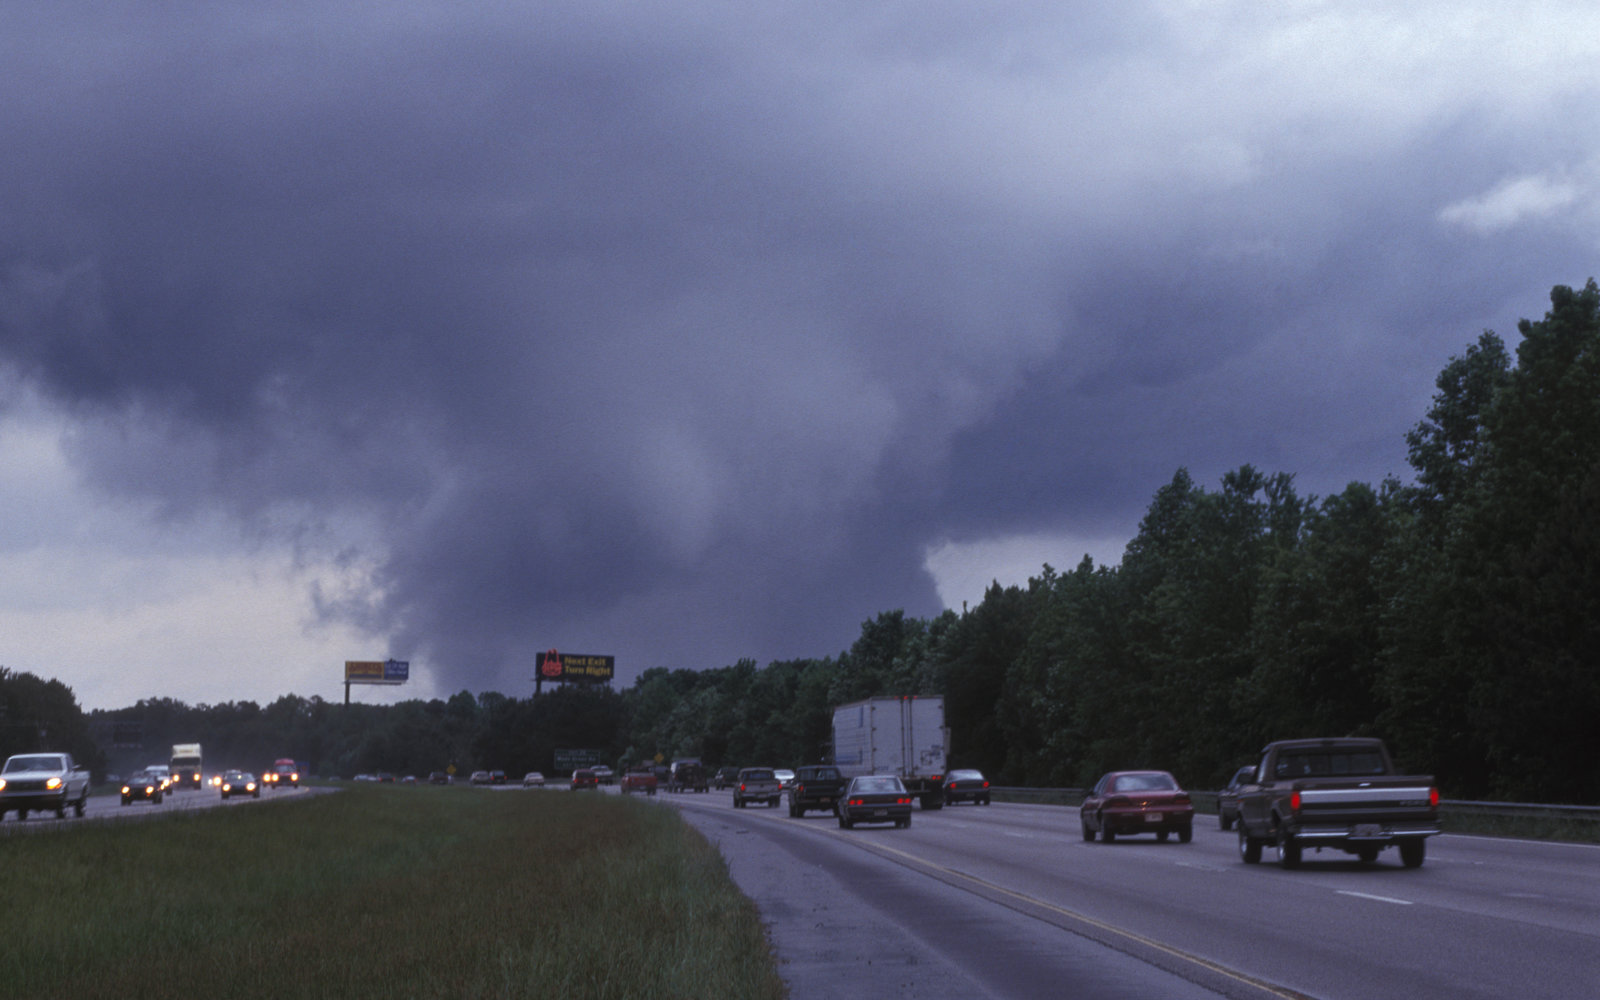 150 People Hid In A Cave After Tornados On Georgia